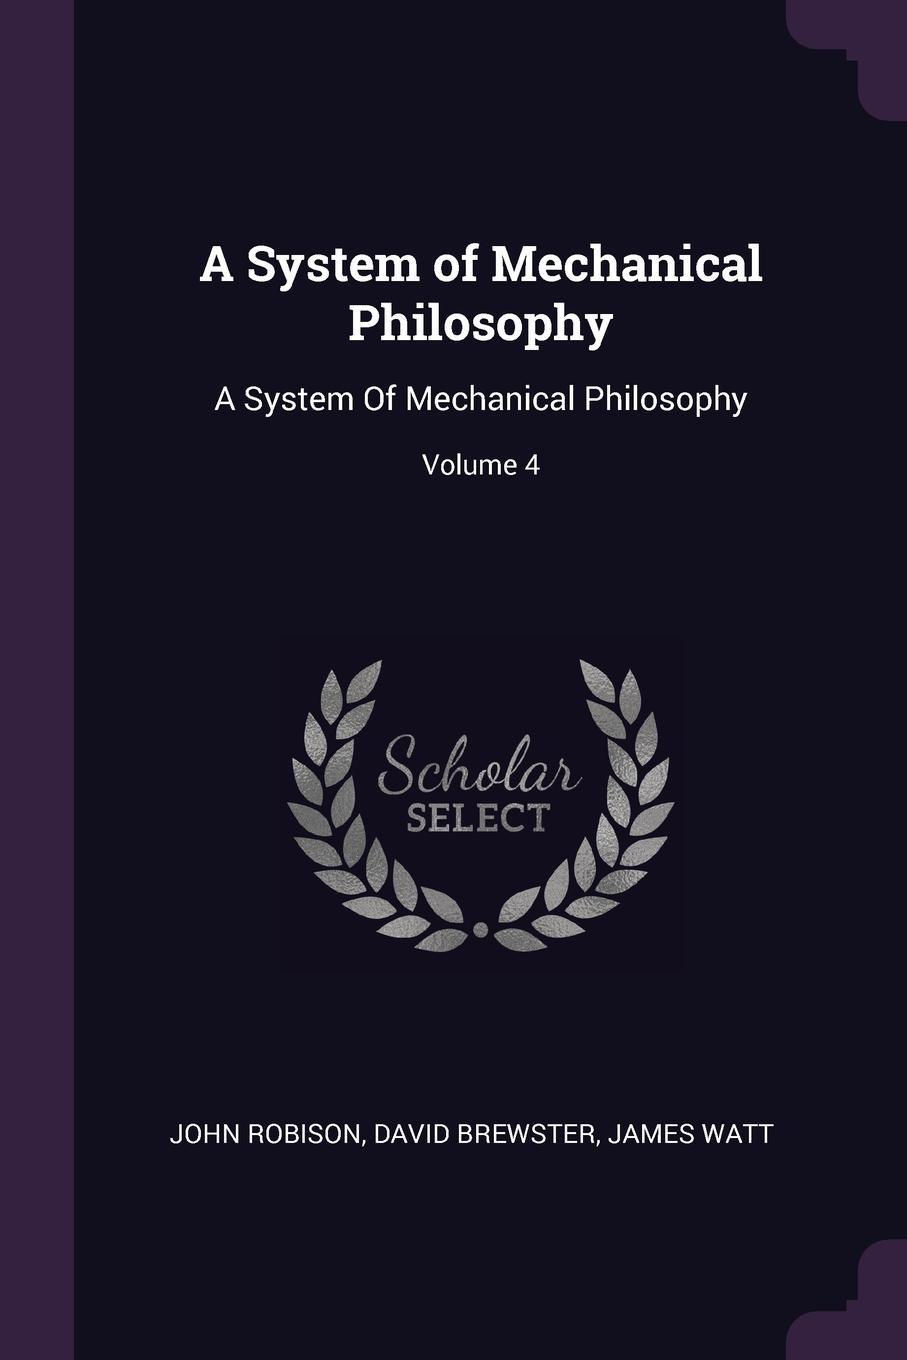 John Robison, David Brewster, James Watt. A System of Mechanical Philosophy. A System Of Mechanical Philosophy; Volume 4